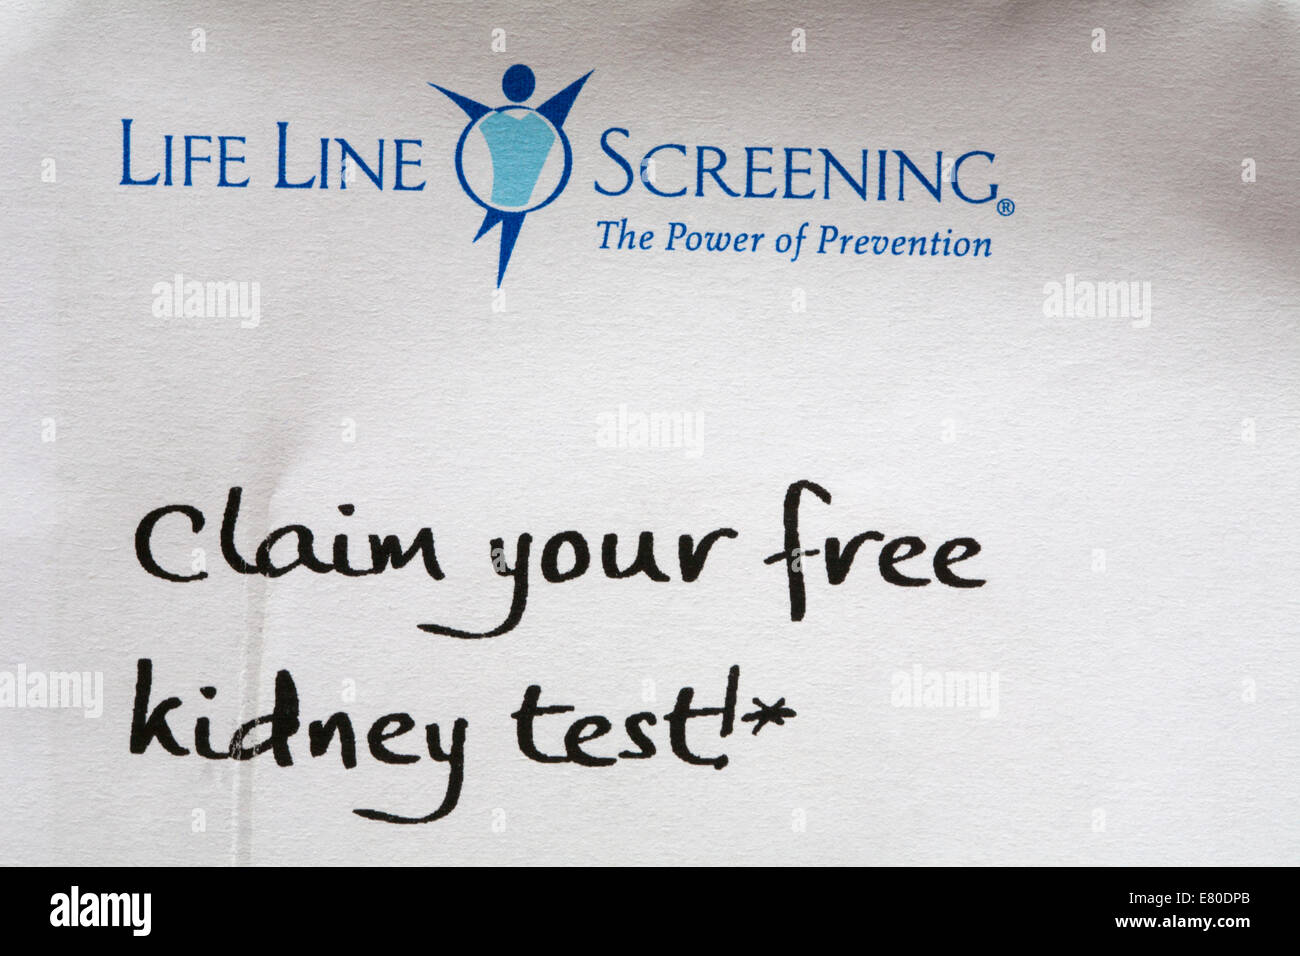 Life Line Screening the power of prevention Claim your free kidney test information on envelope - Stock Image